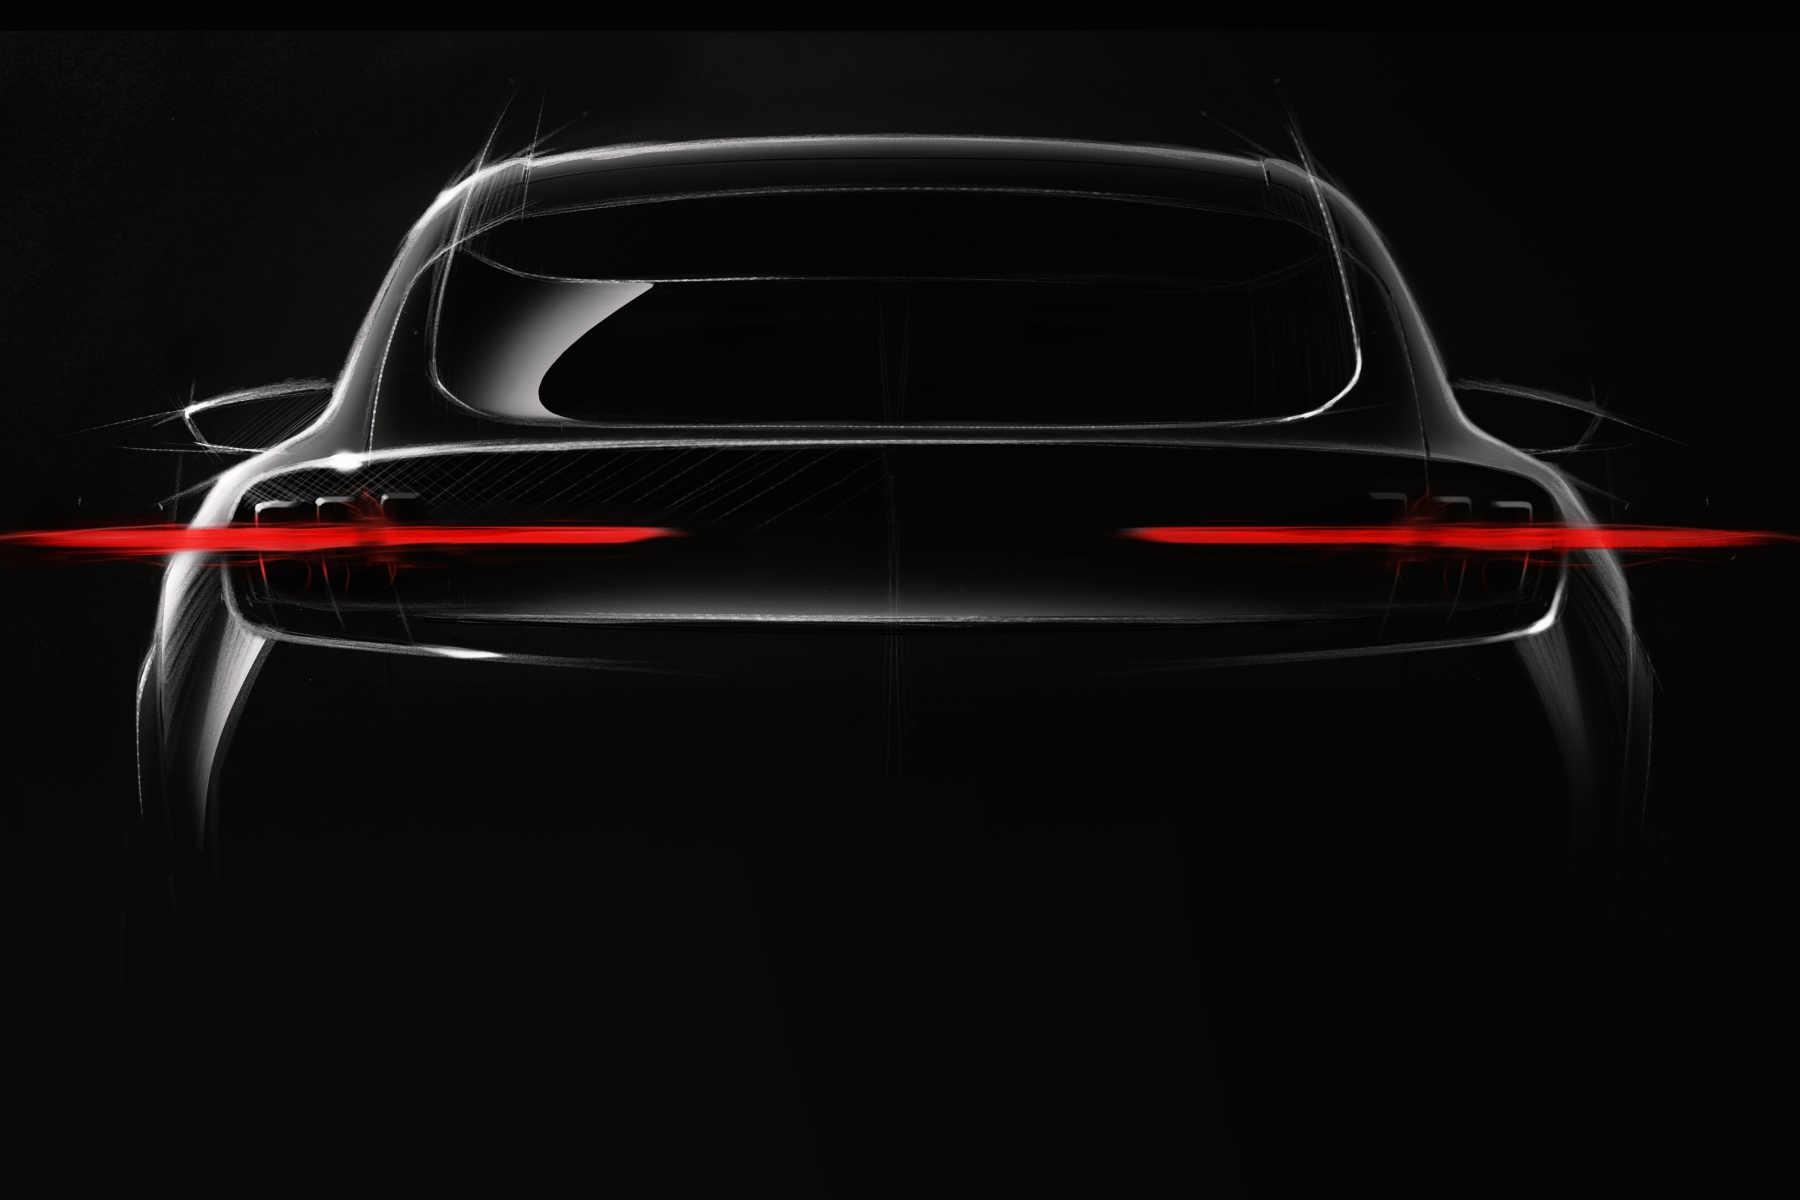 Teaser of Ford's all-new Mustang-inspired fully-electric performance SUV